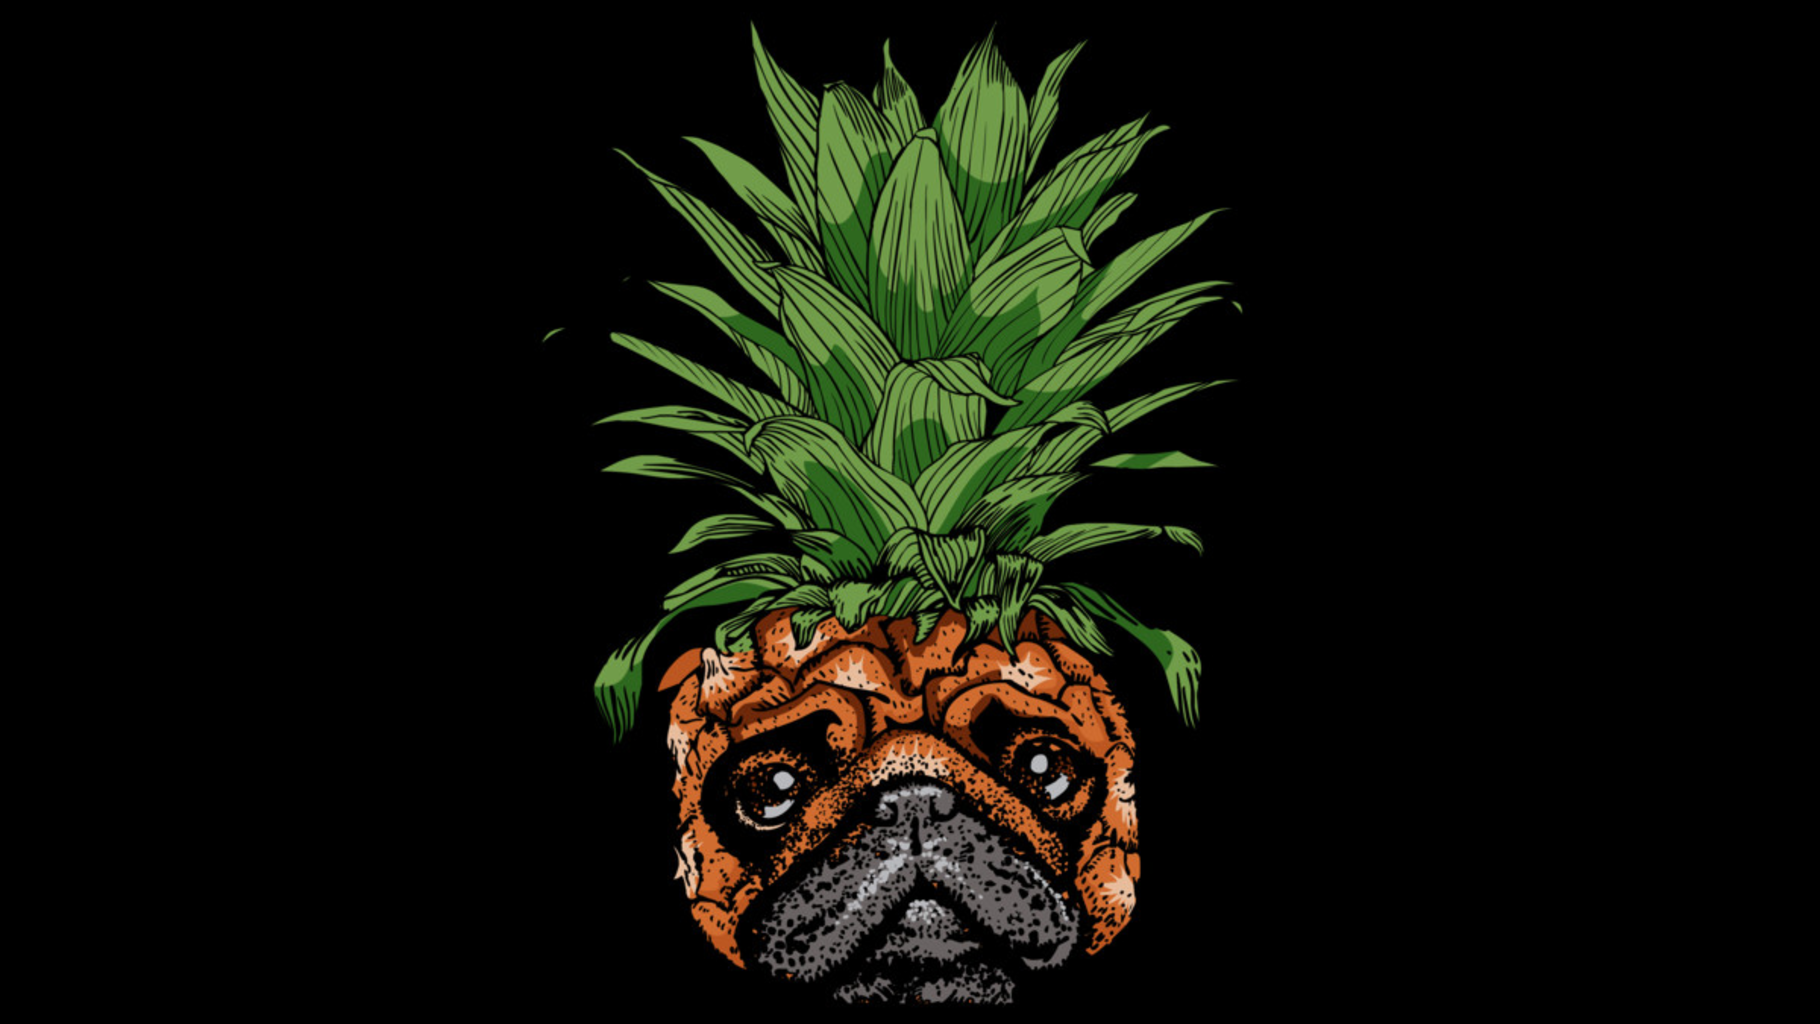 Design by Humans: Pineapple Pug